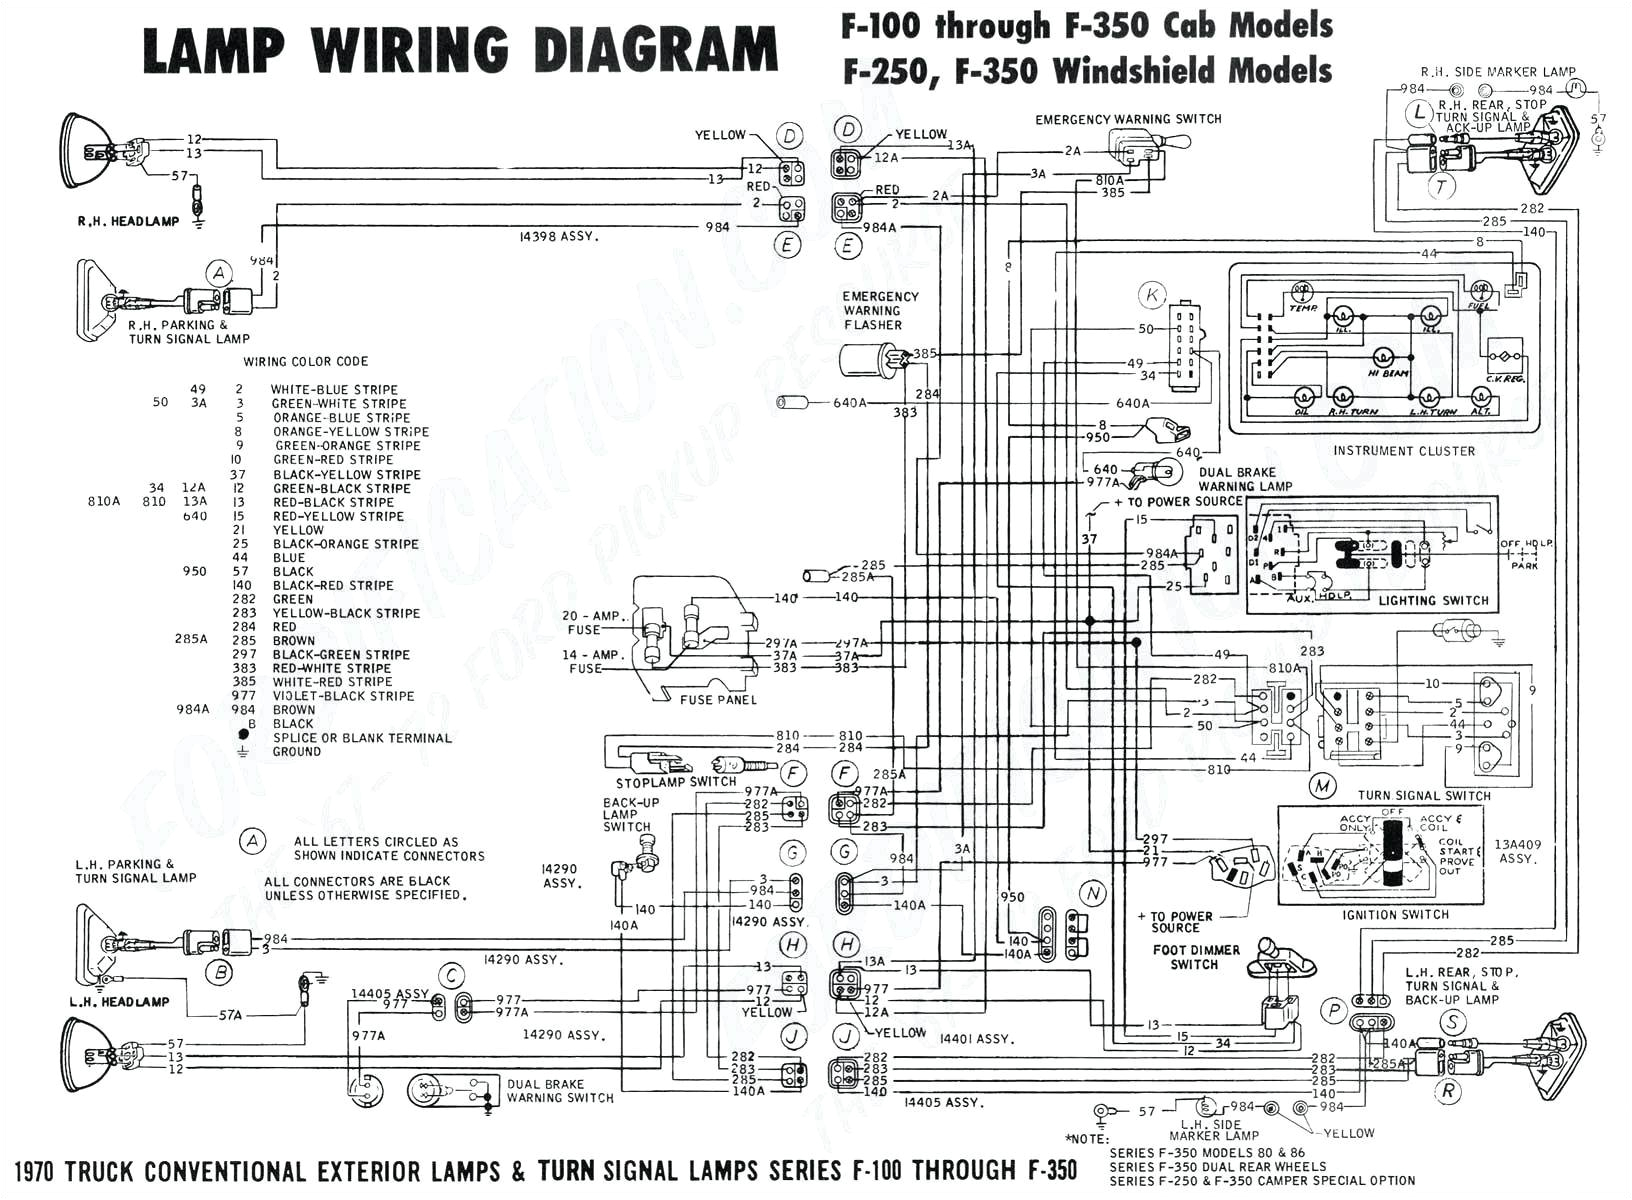 2006 Honda Accord Radio Wiring Diagram Honda Accord Radio Wiring Diagram Wiring Diagram Technic